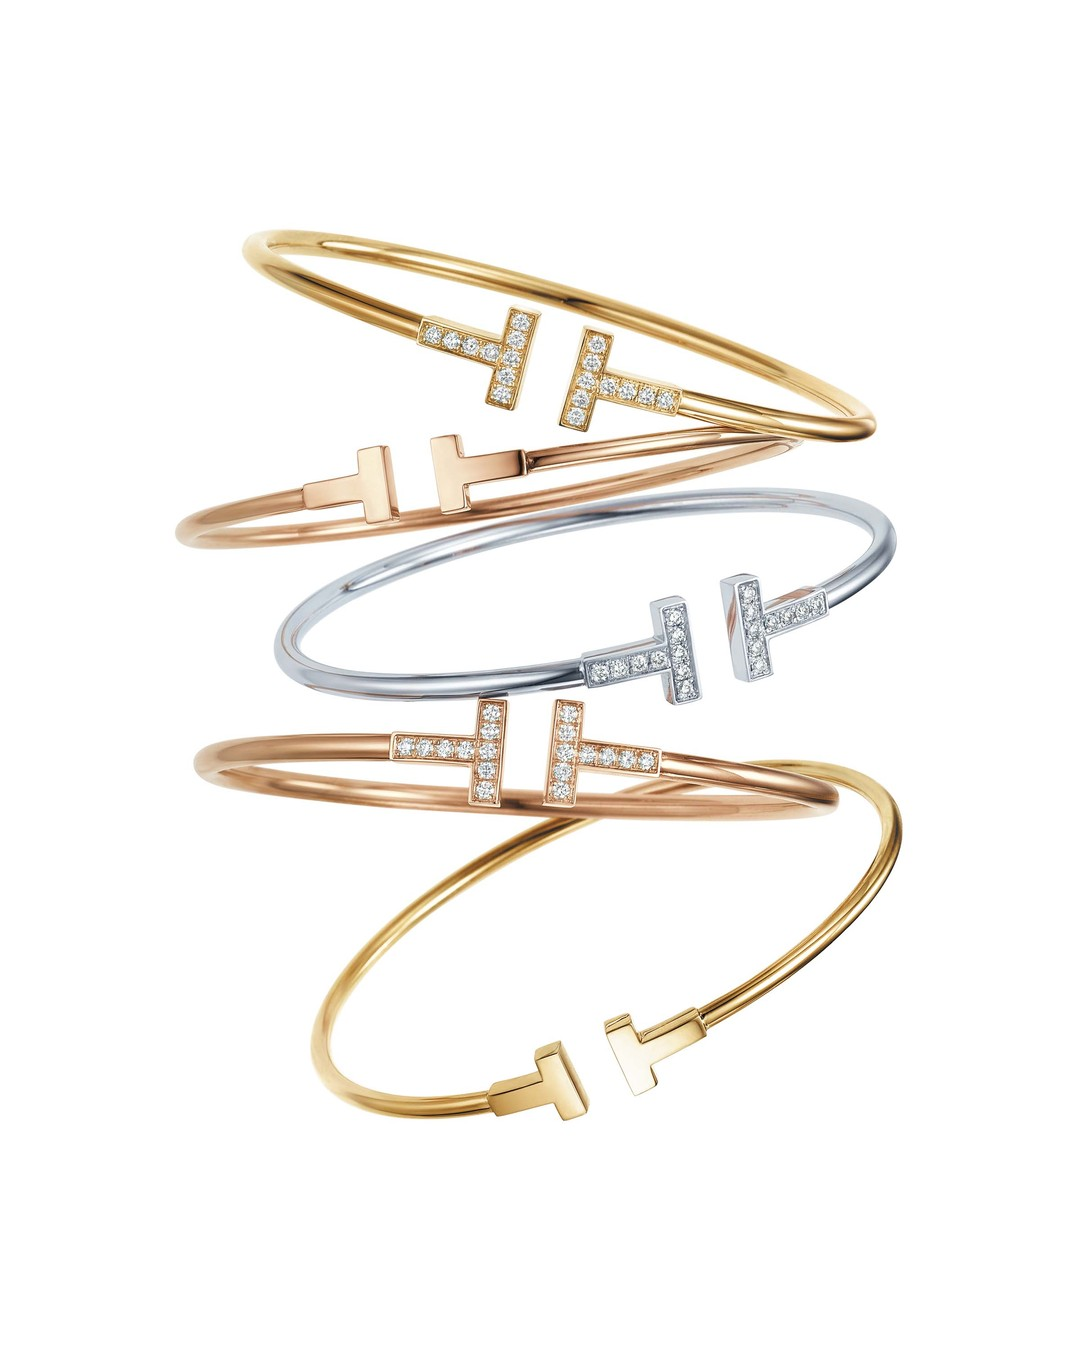 Tiffany T wire bracelets in yellow, rose and white gold, with or without diamonds from £895.